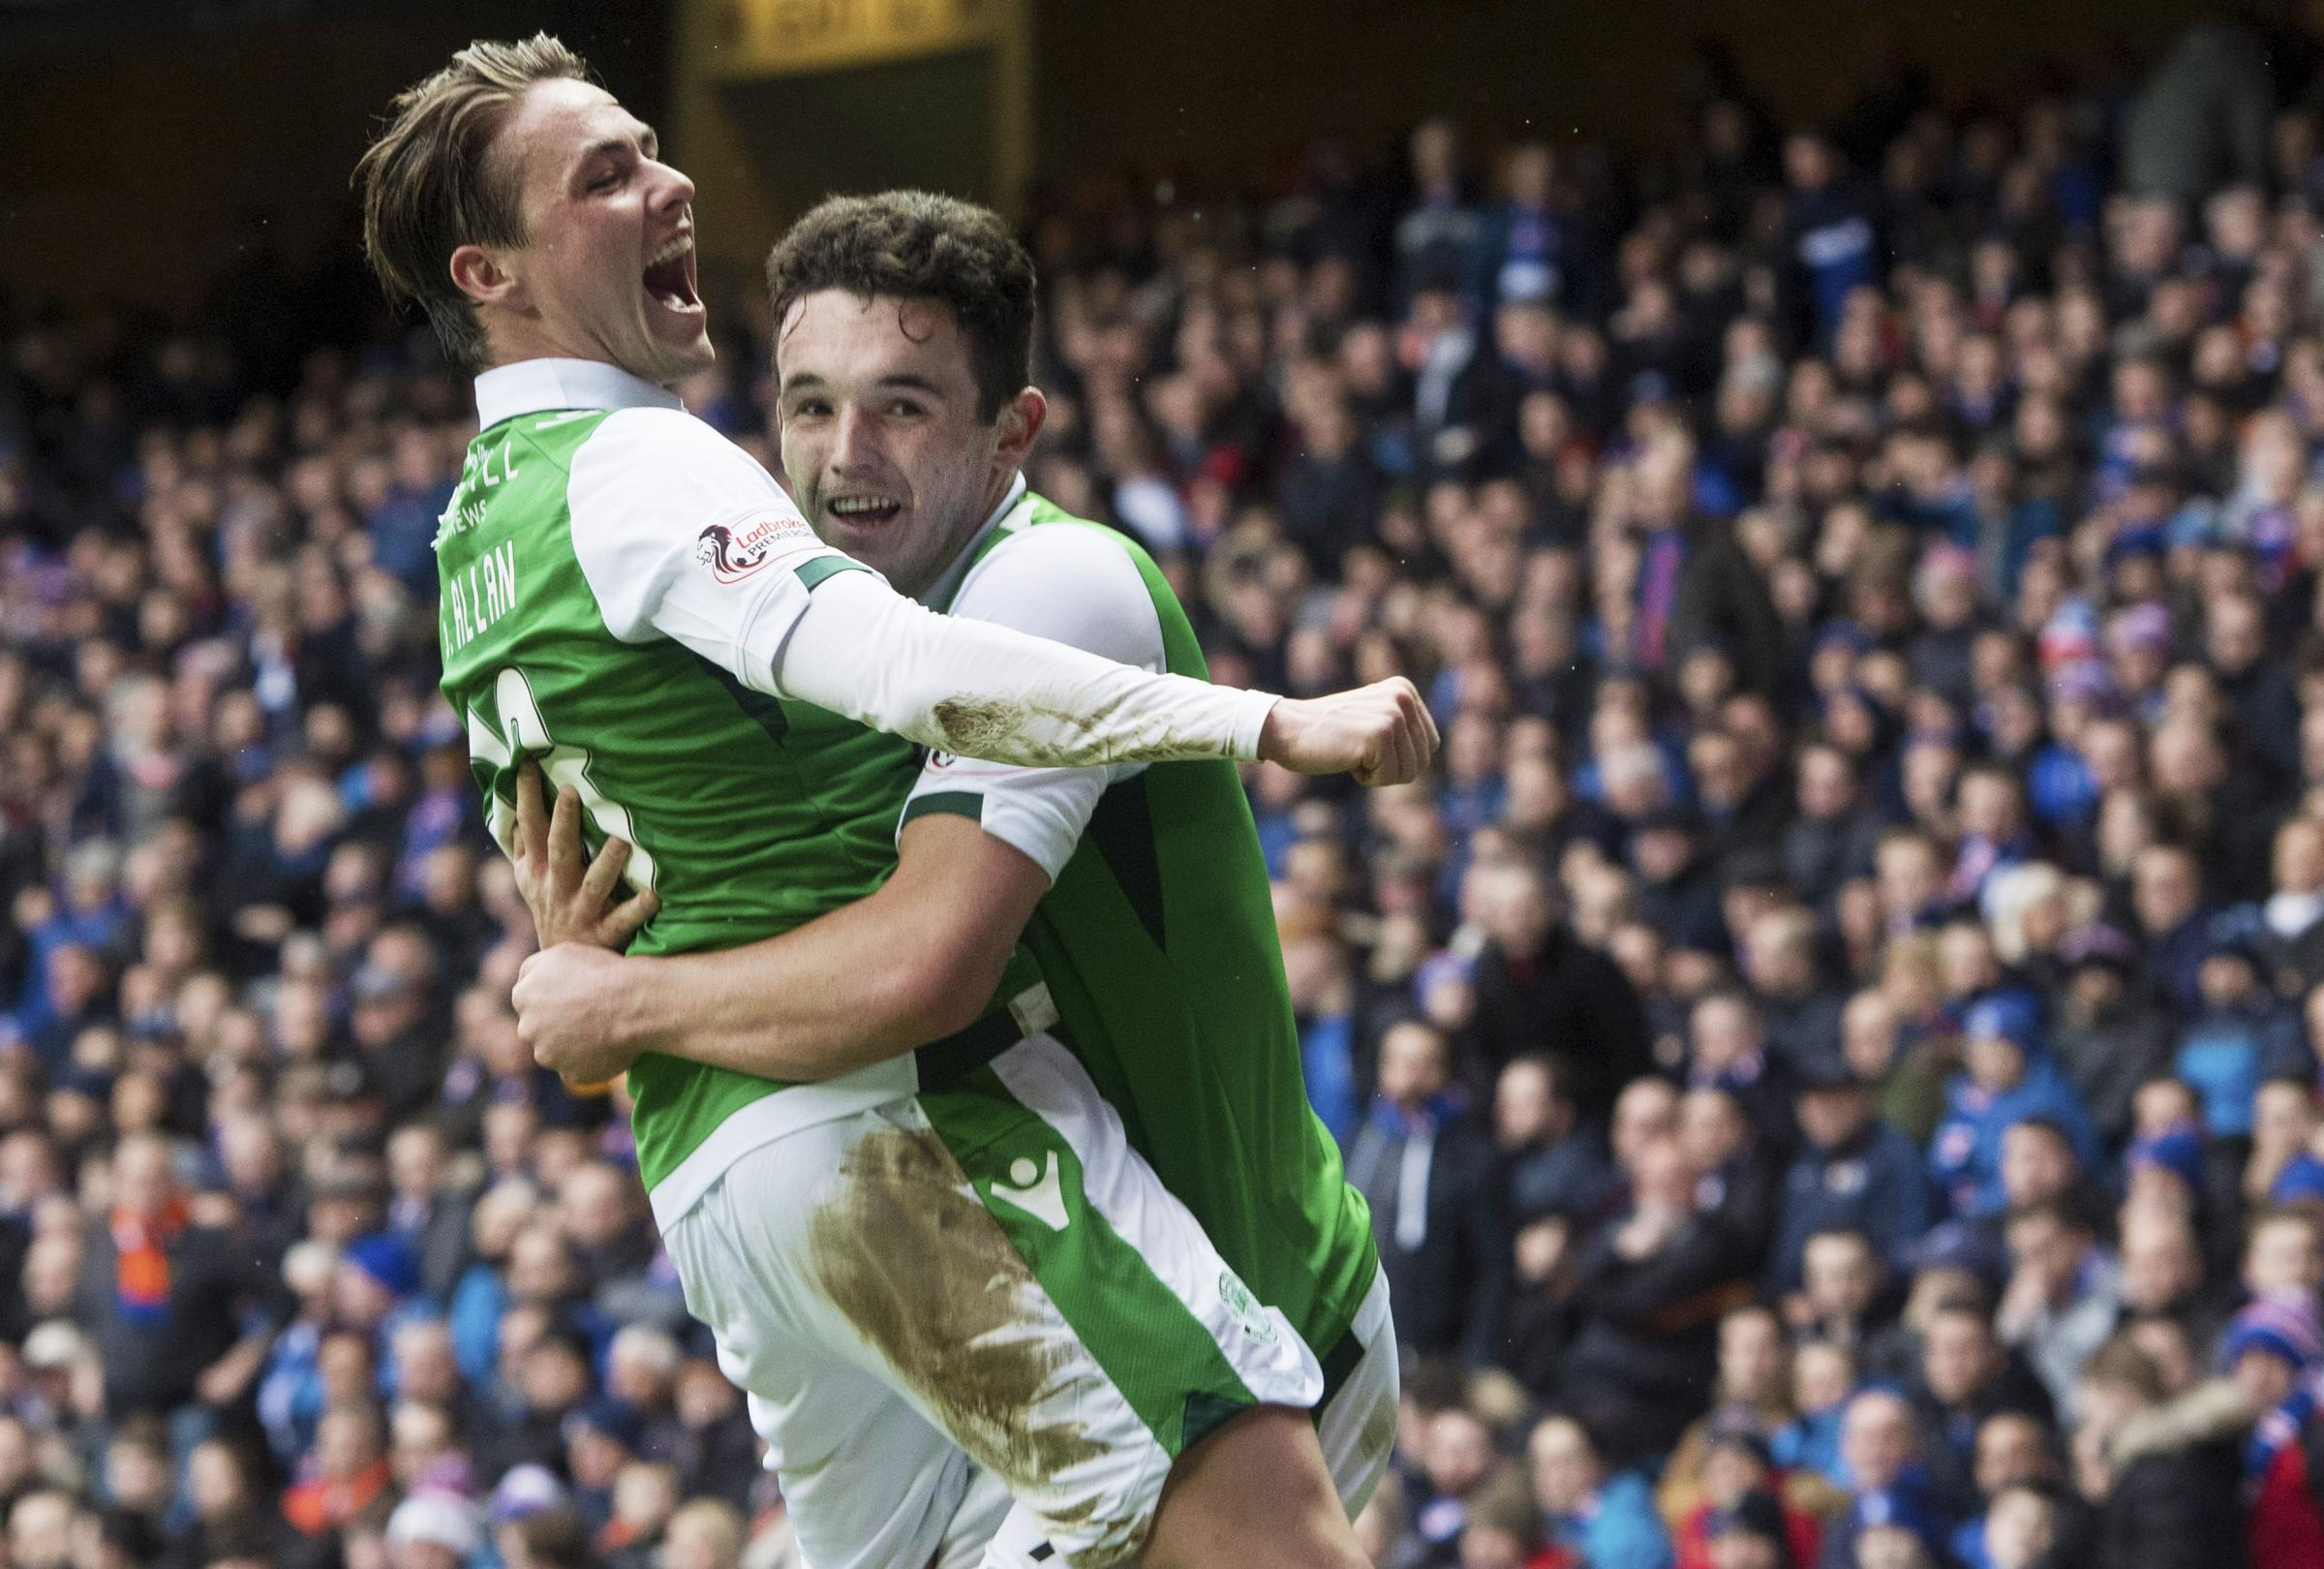 Hibernian midfielder John McGinn, right, celebrates his goal against Rangers at Ibrox on Saturday with Scott Allan.